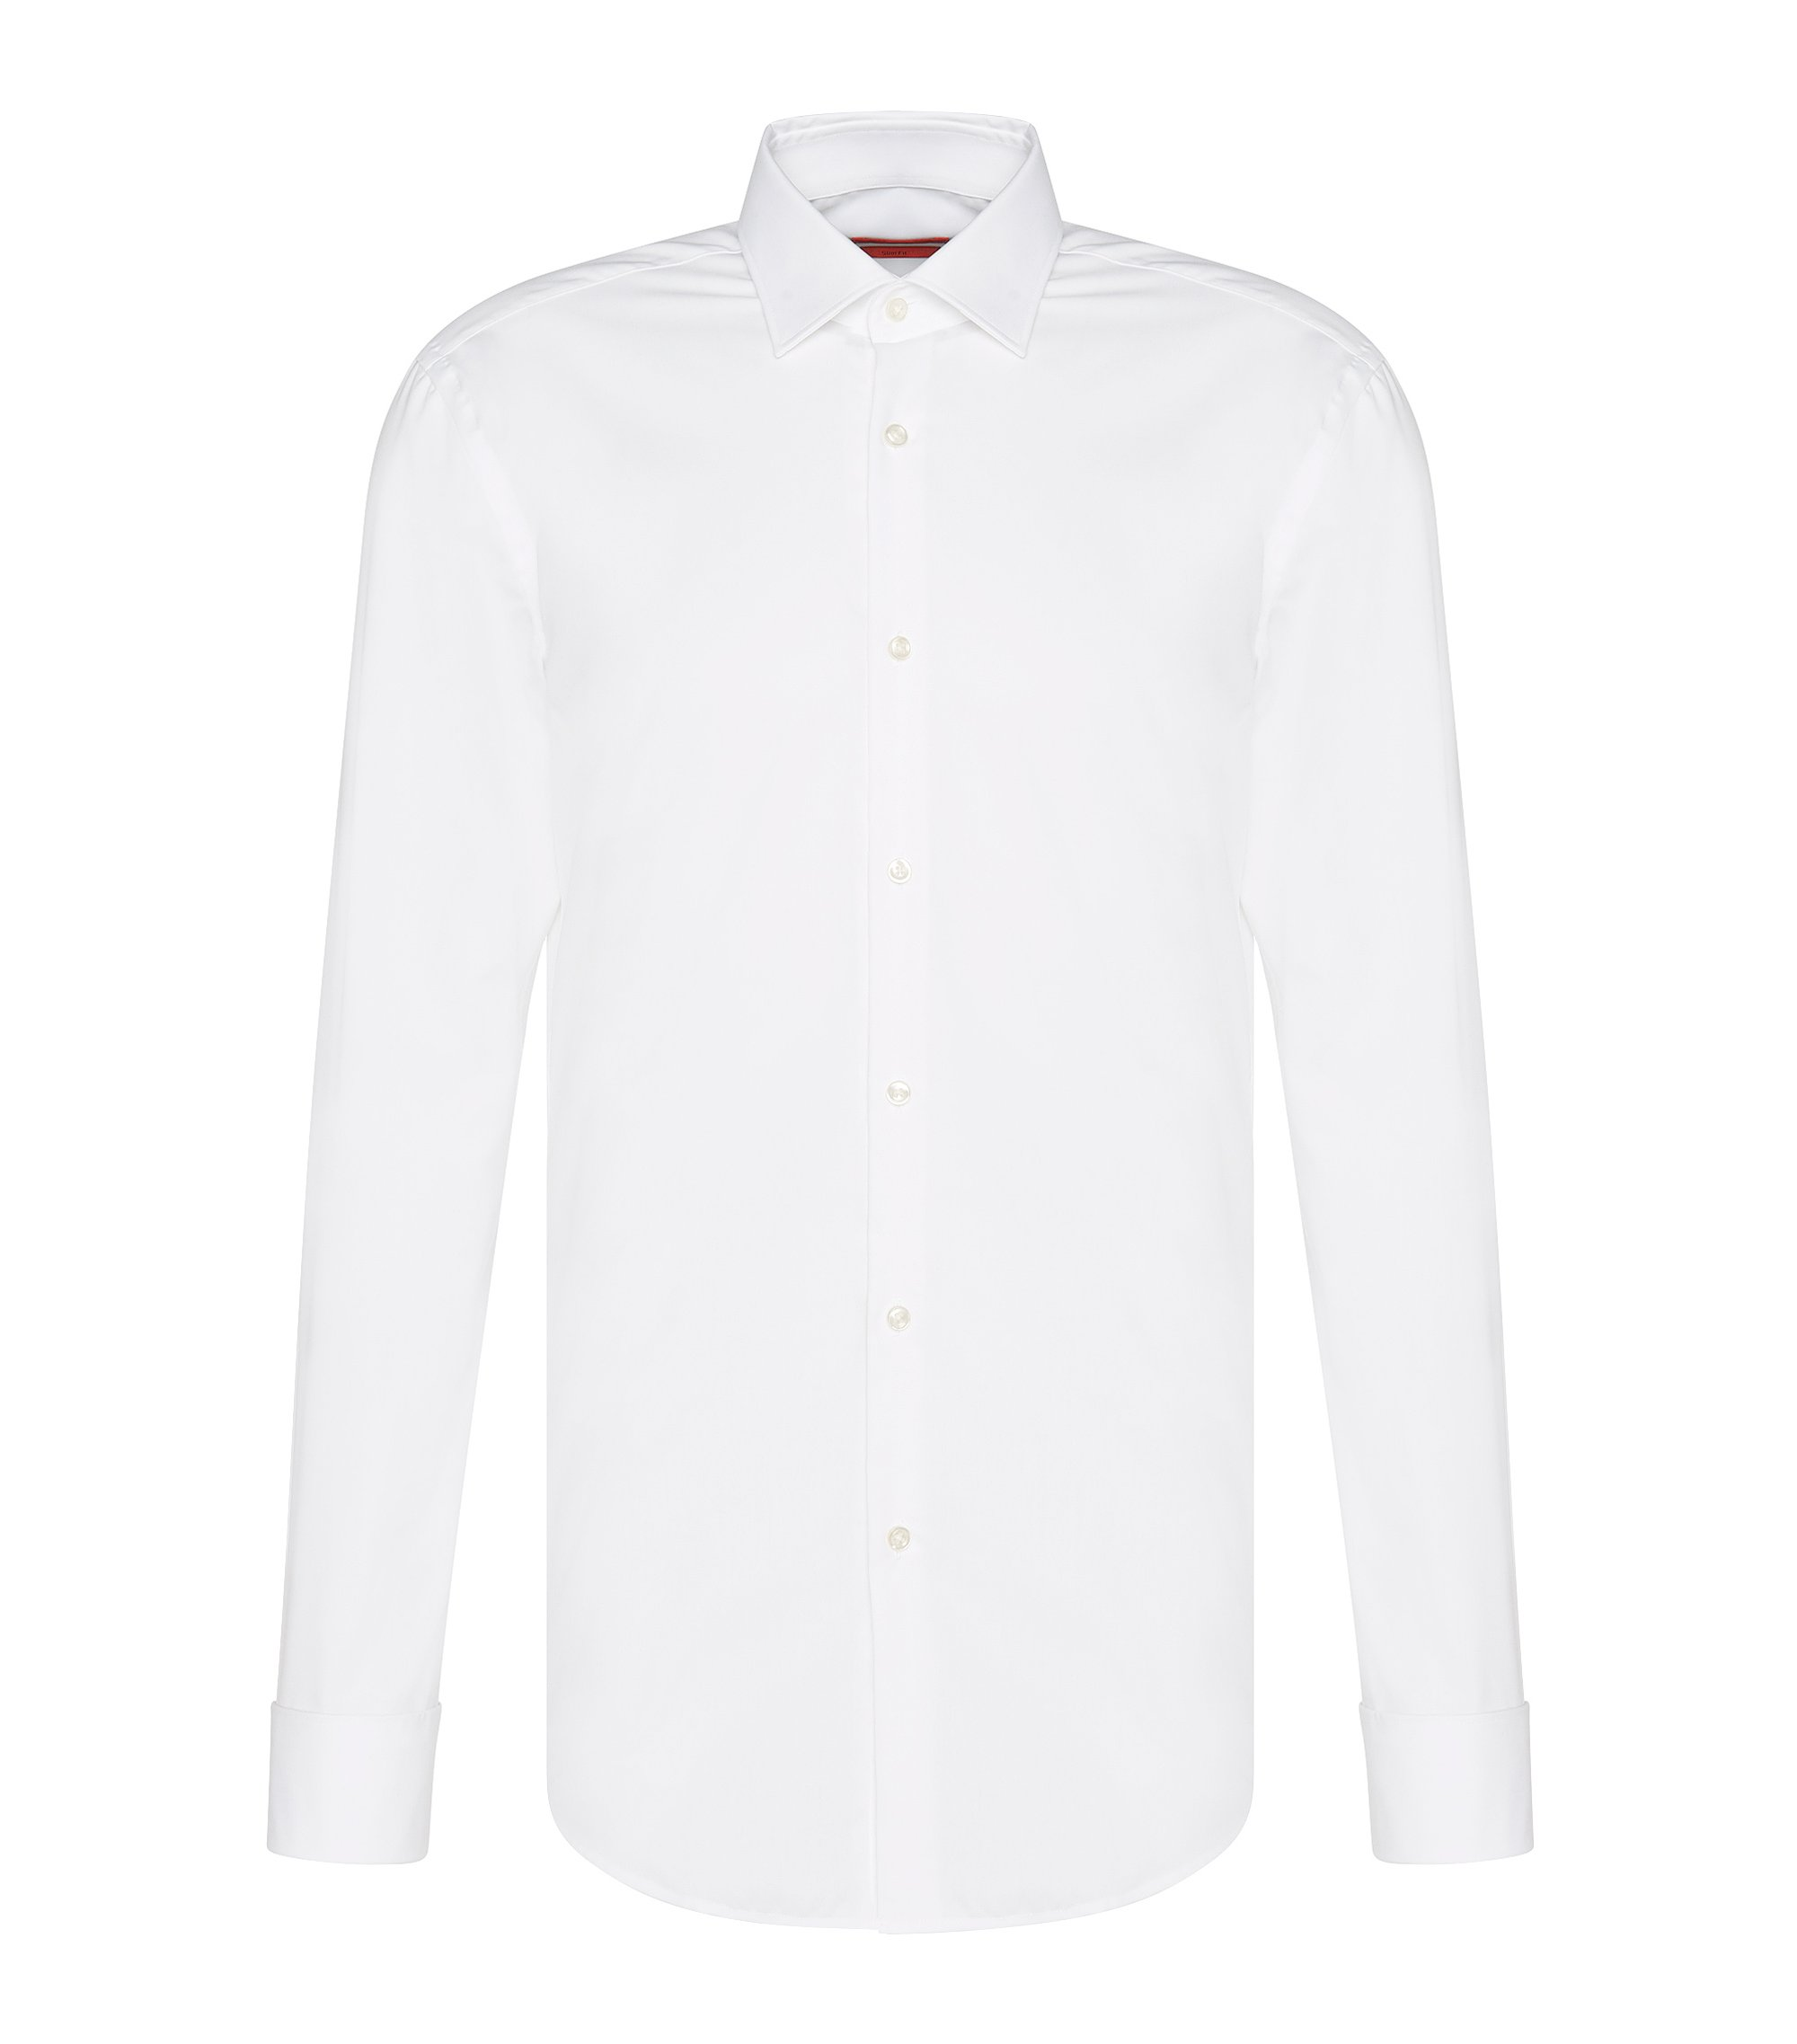 Camicia business slim fit con polsini alla francese, Bianco